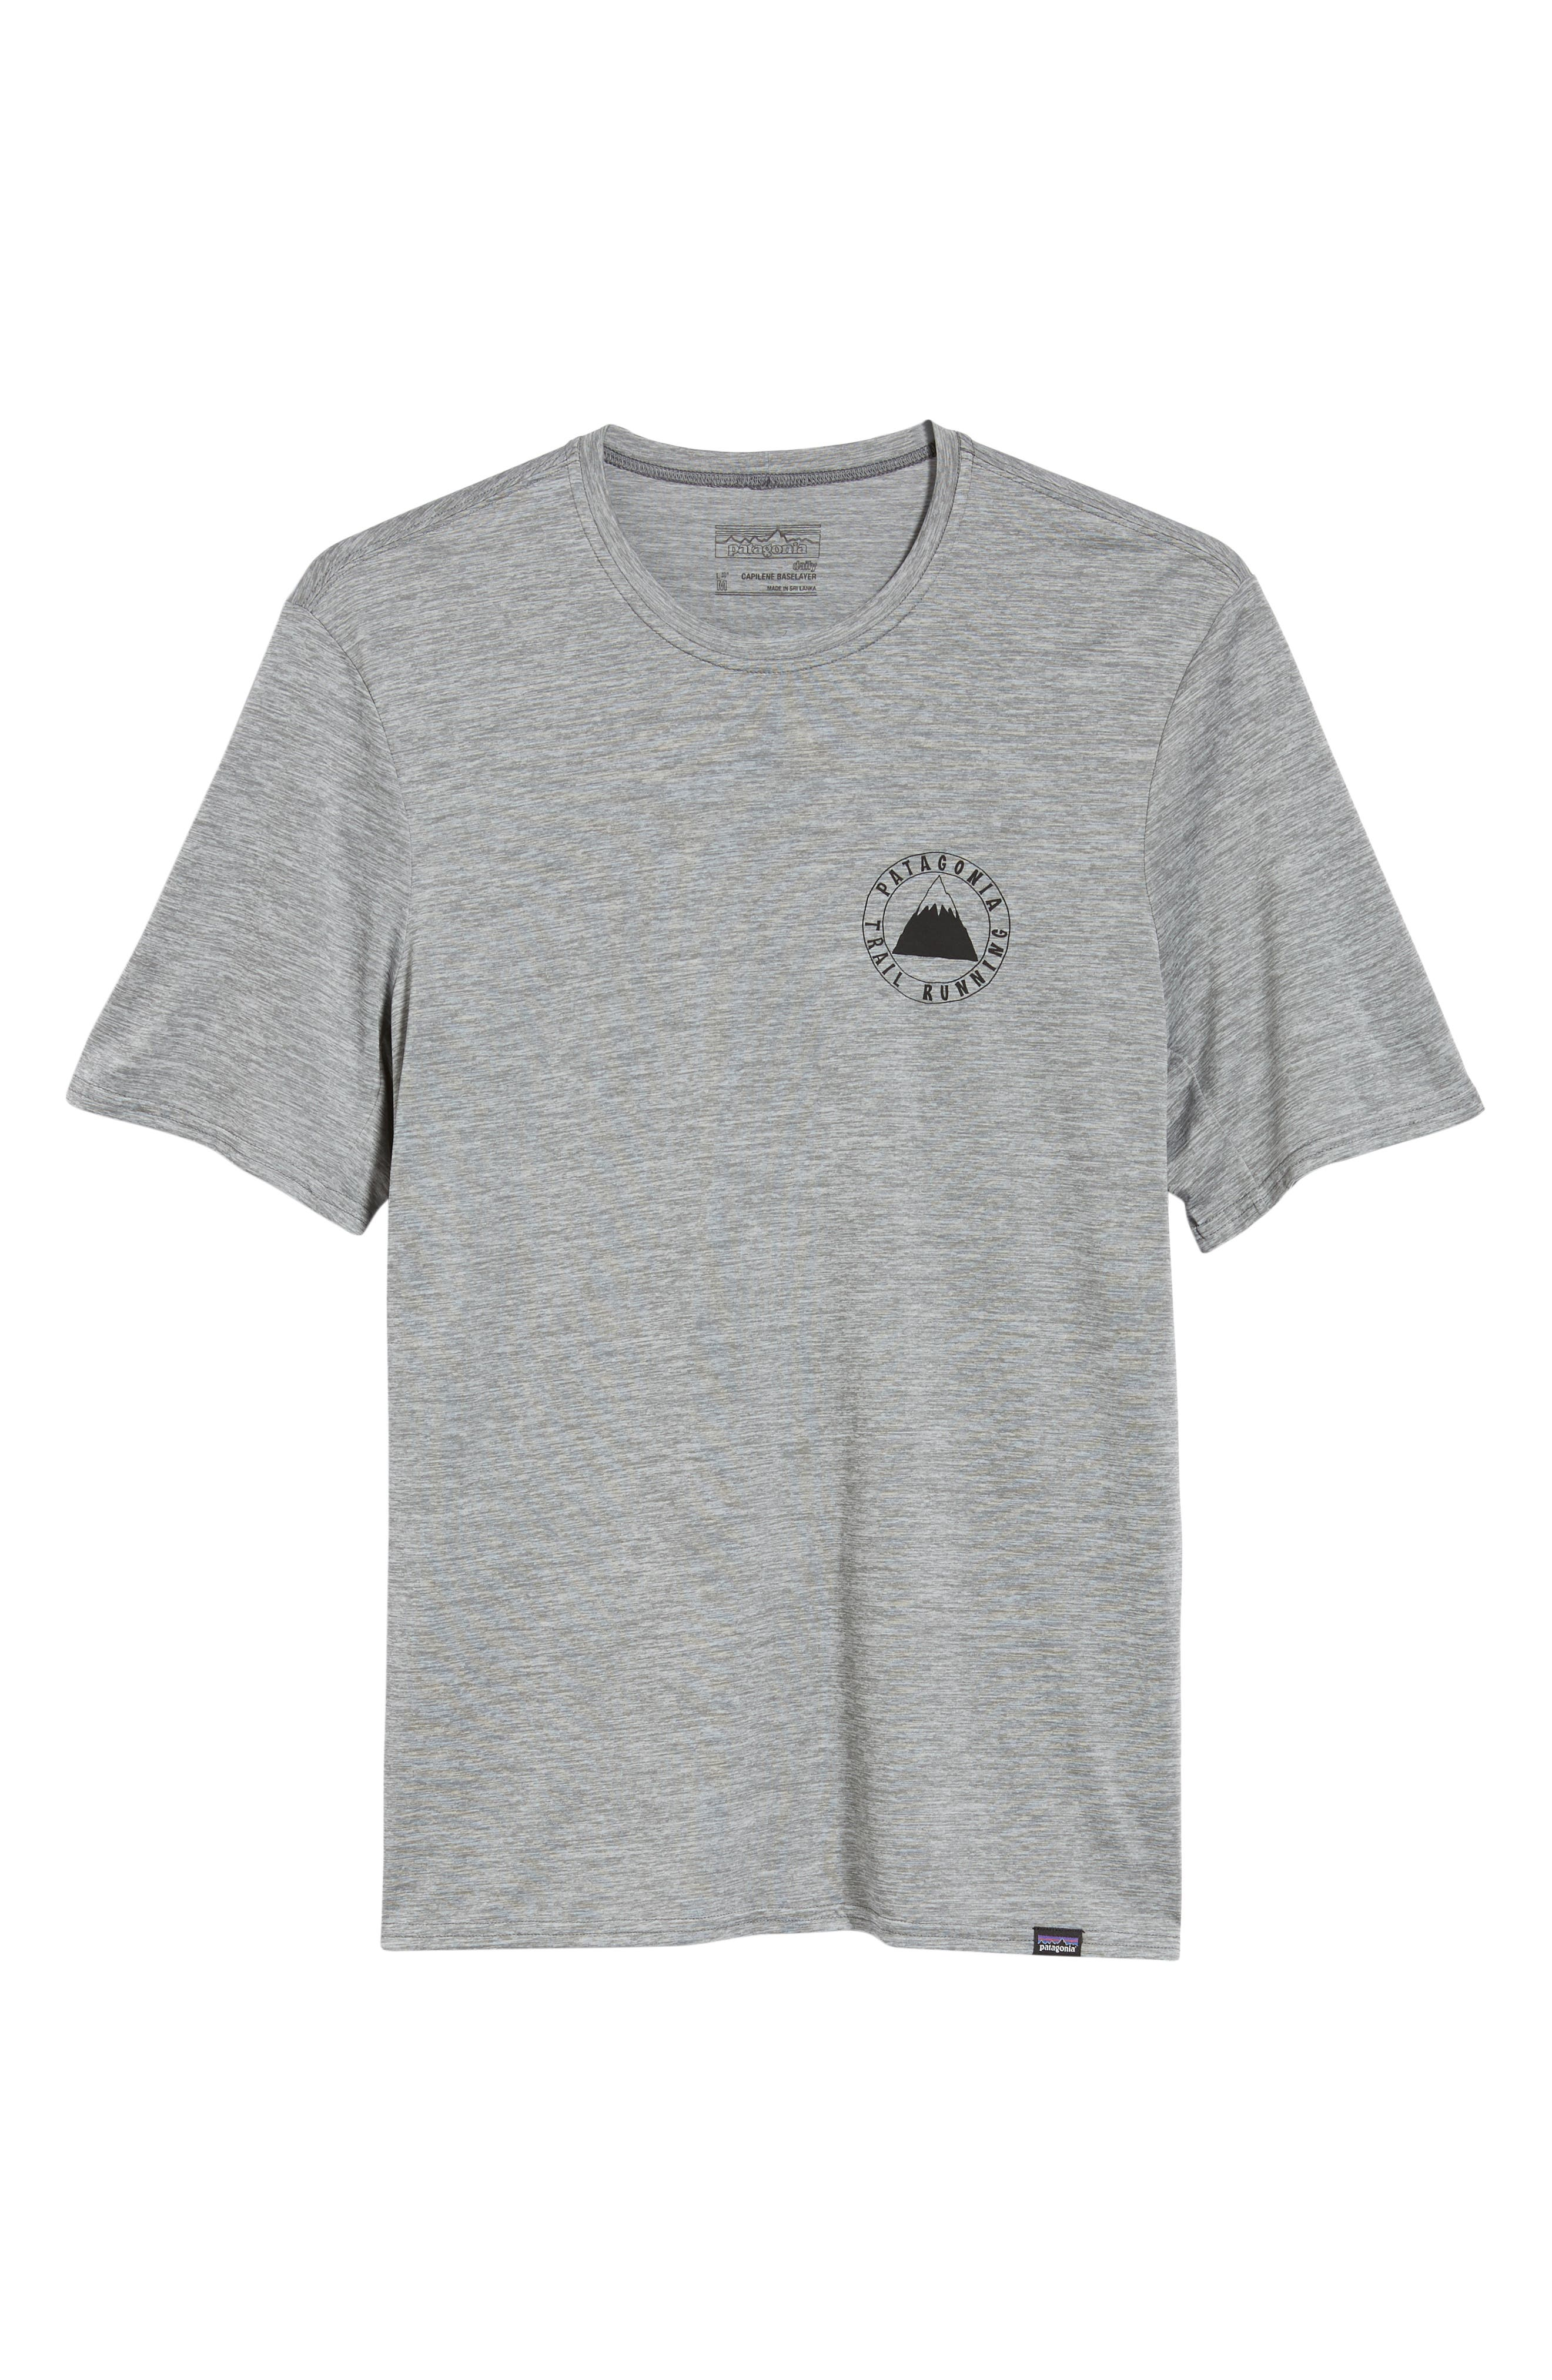 Capilene<sup>®</sup> Daily Regular Fit T-Shirt,                             Alternate thumbnail 6, color,                             TRAIL MYSTIC FEATHER GREY